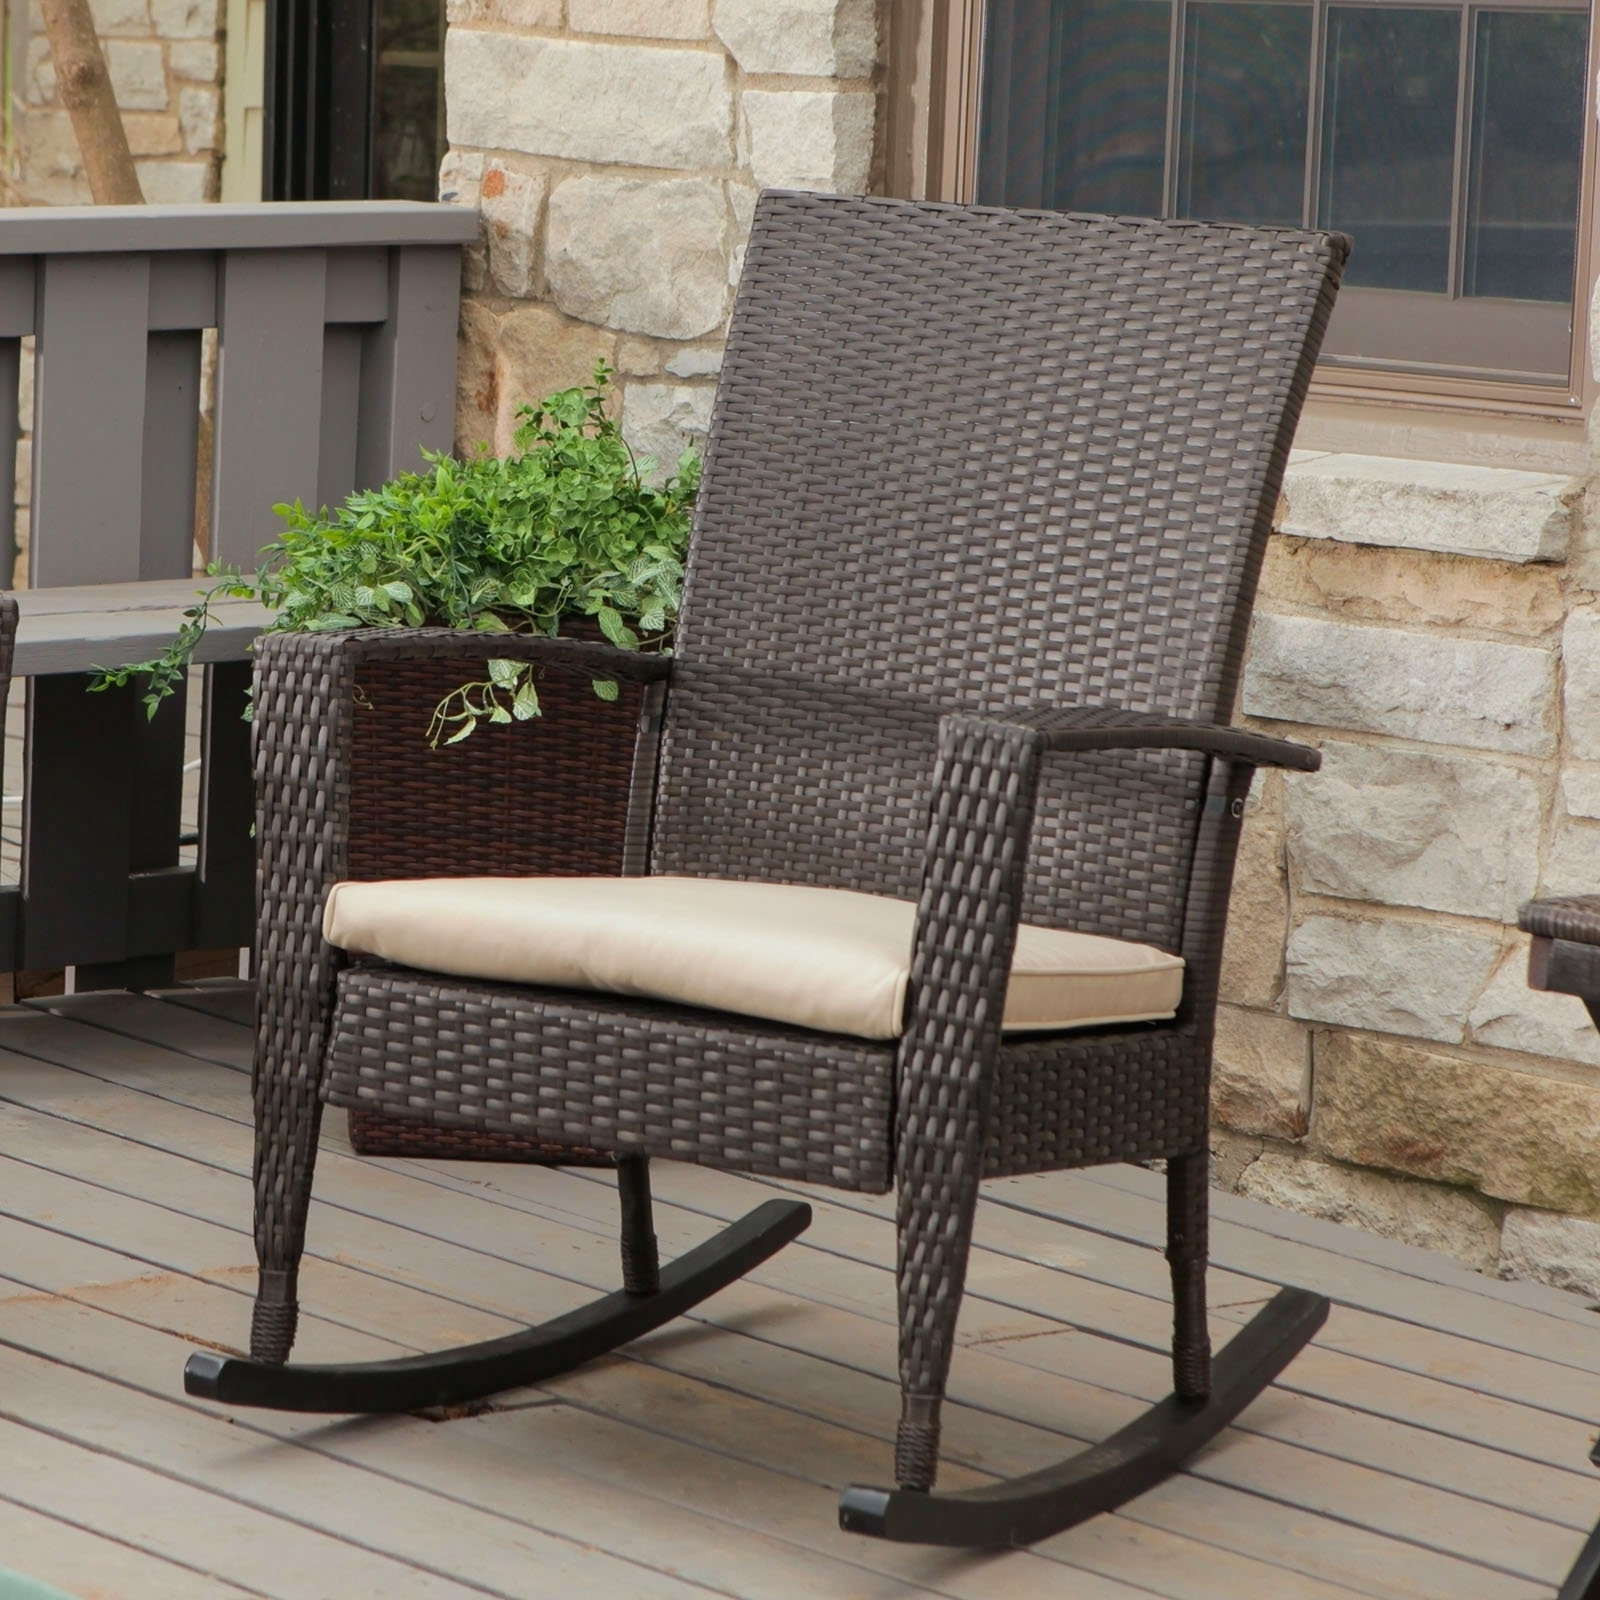 2019 Rocking Chairs For Porch Throughout Patio & Garden : Beautiful Outdoor Rocking Chairs Cracker' Vinyl (View 1 of 20)